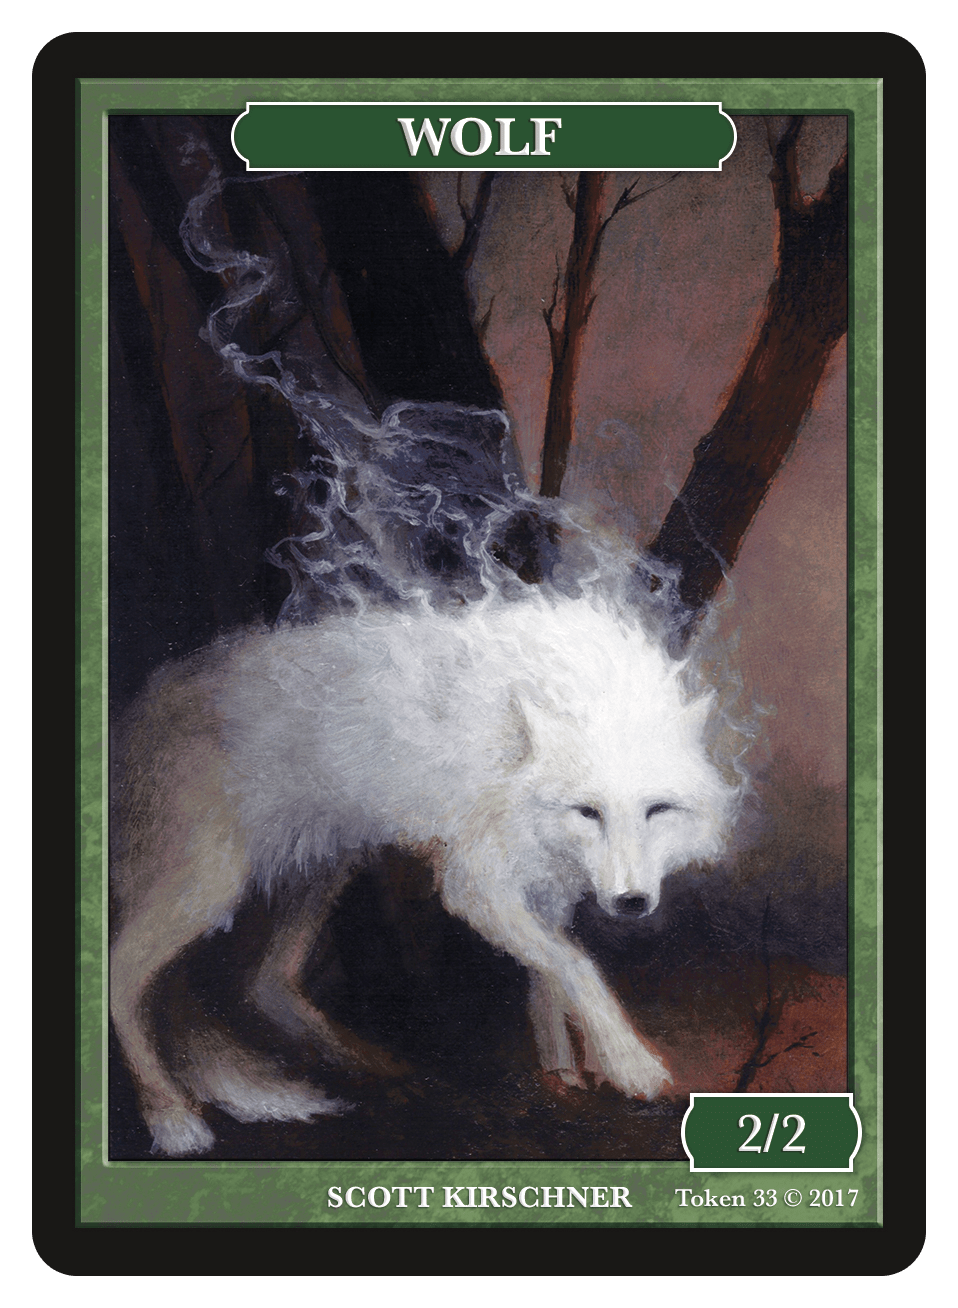 Wolf Token (2/2) by Scott Kirschner - Token - Original Magic Art - Accessories for Magic the Gathering and other card games